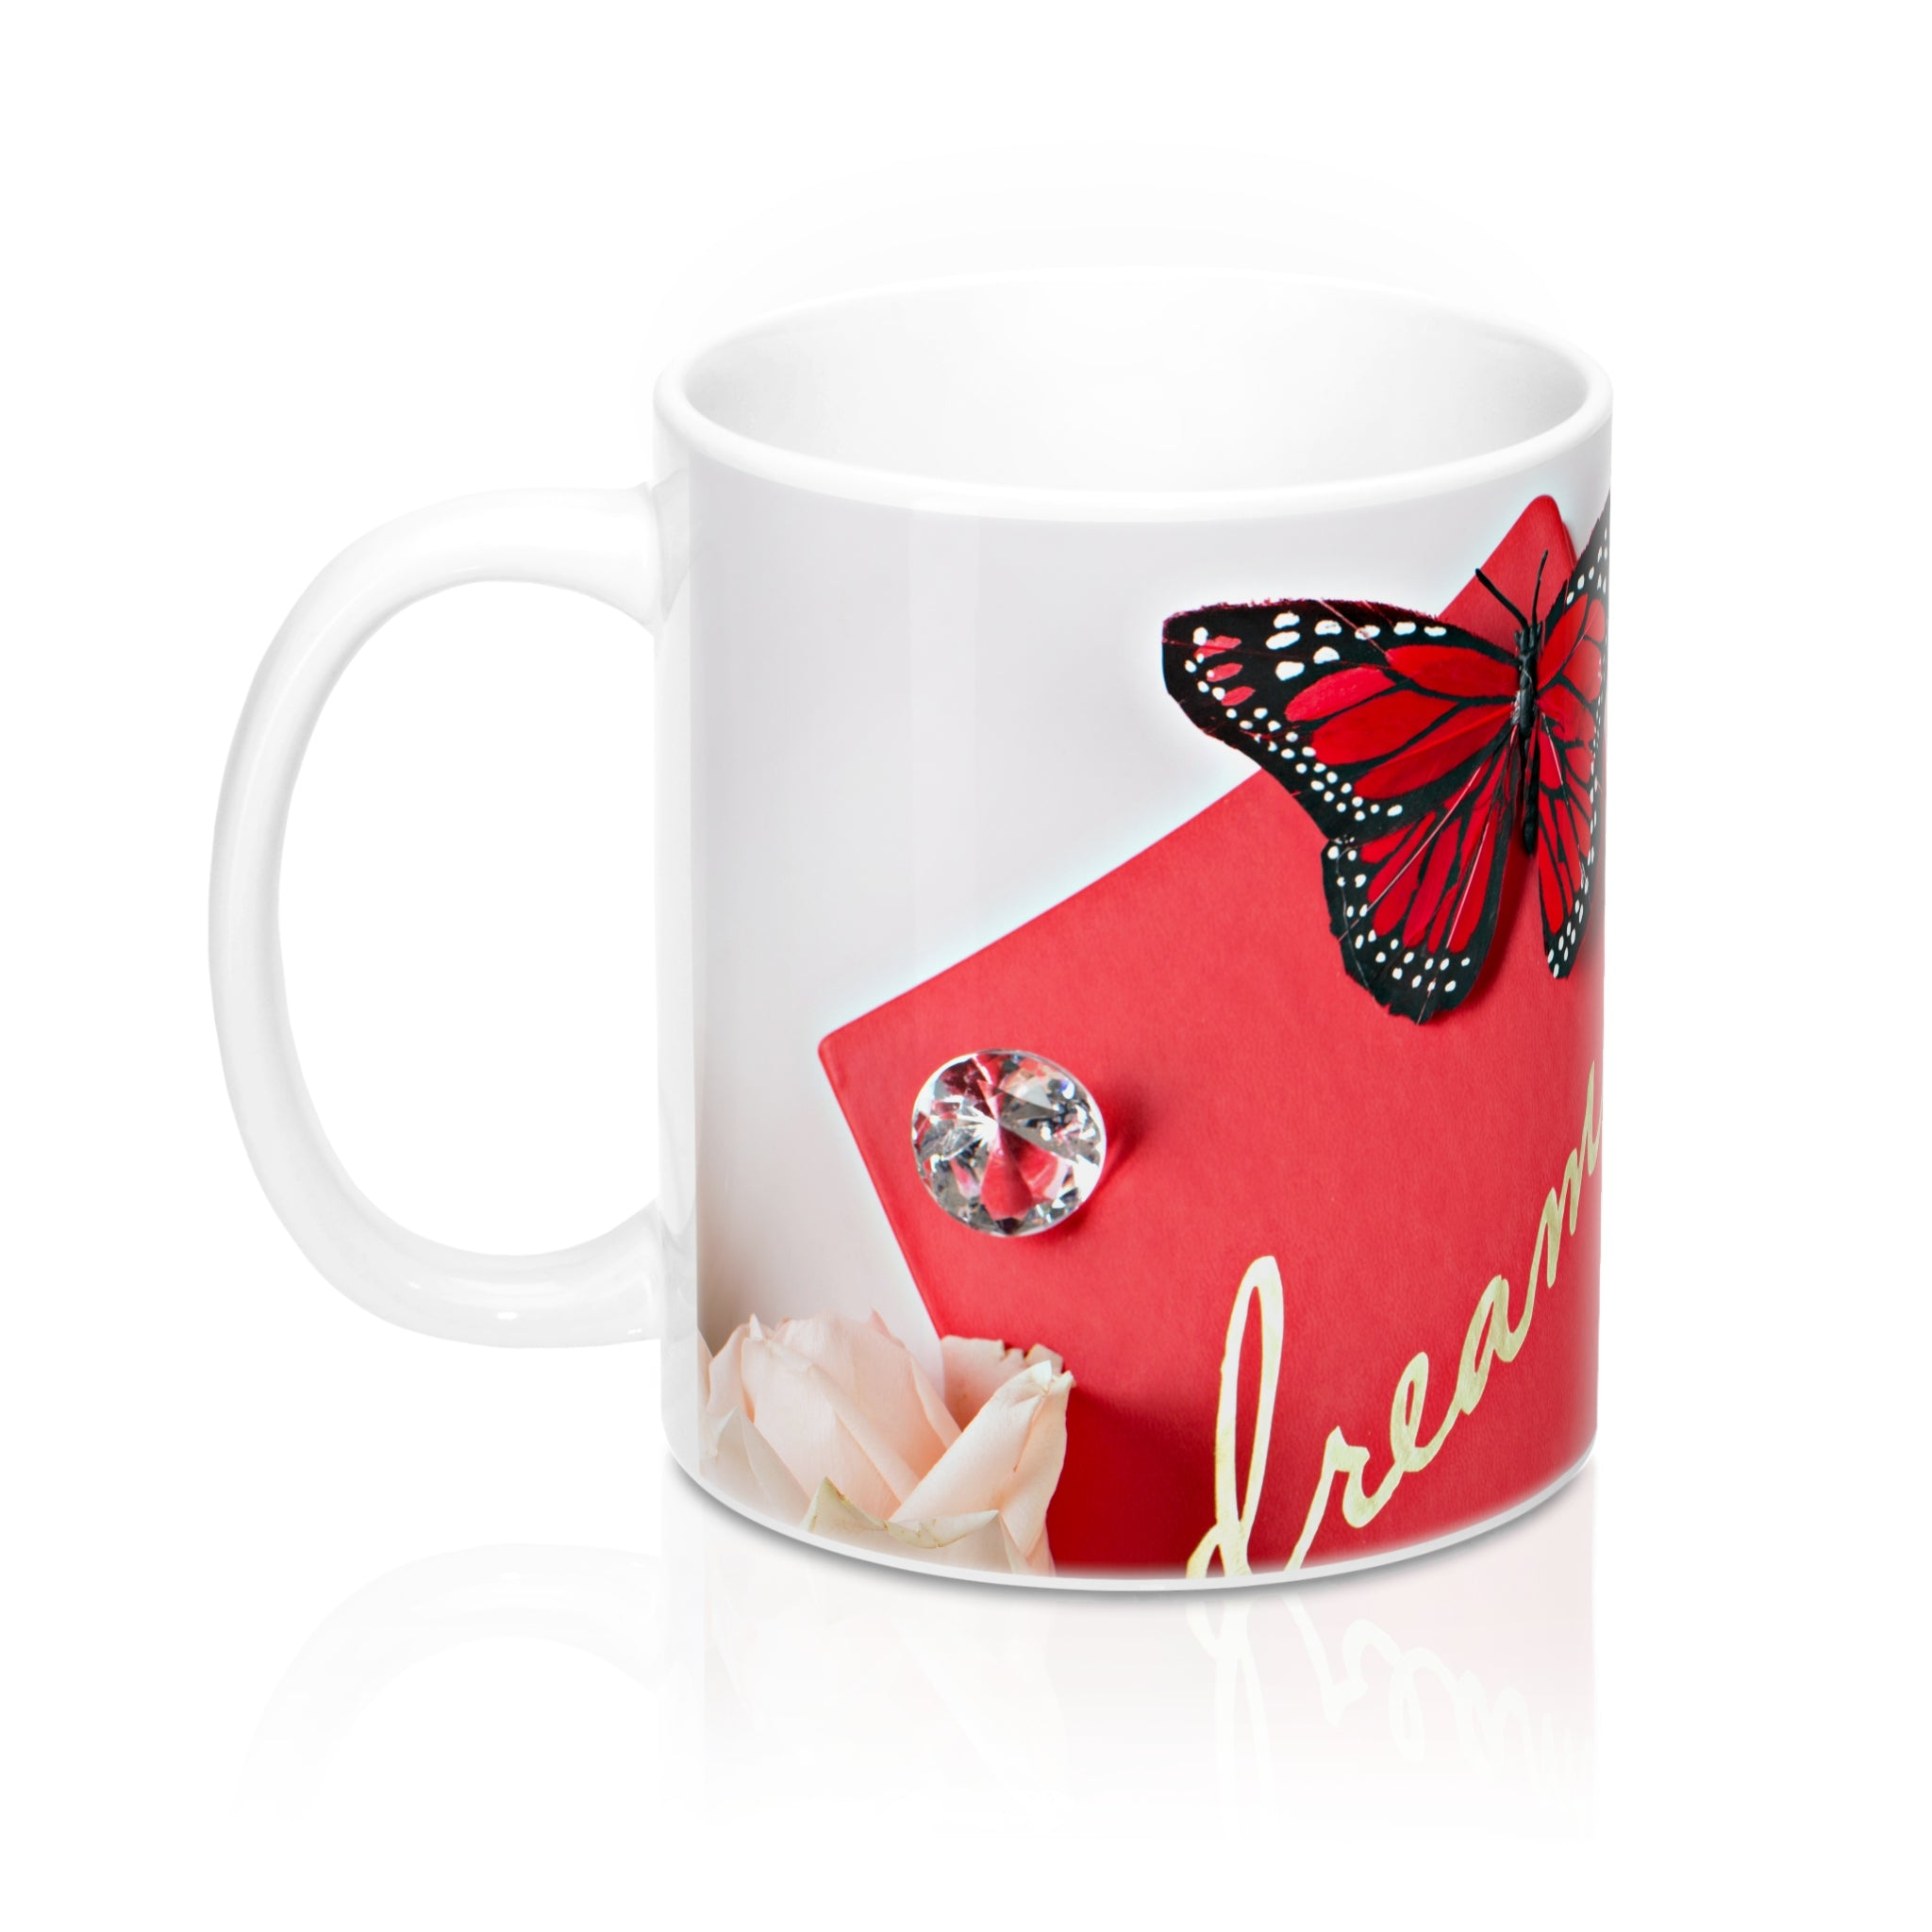 Ceramic Drinking Mug (Diamonds Red Journal Dream)